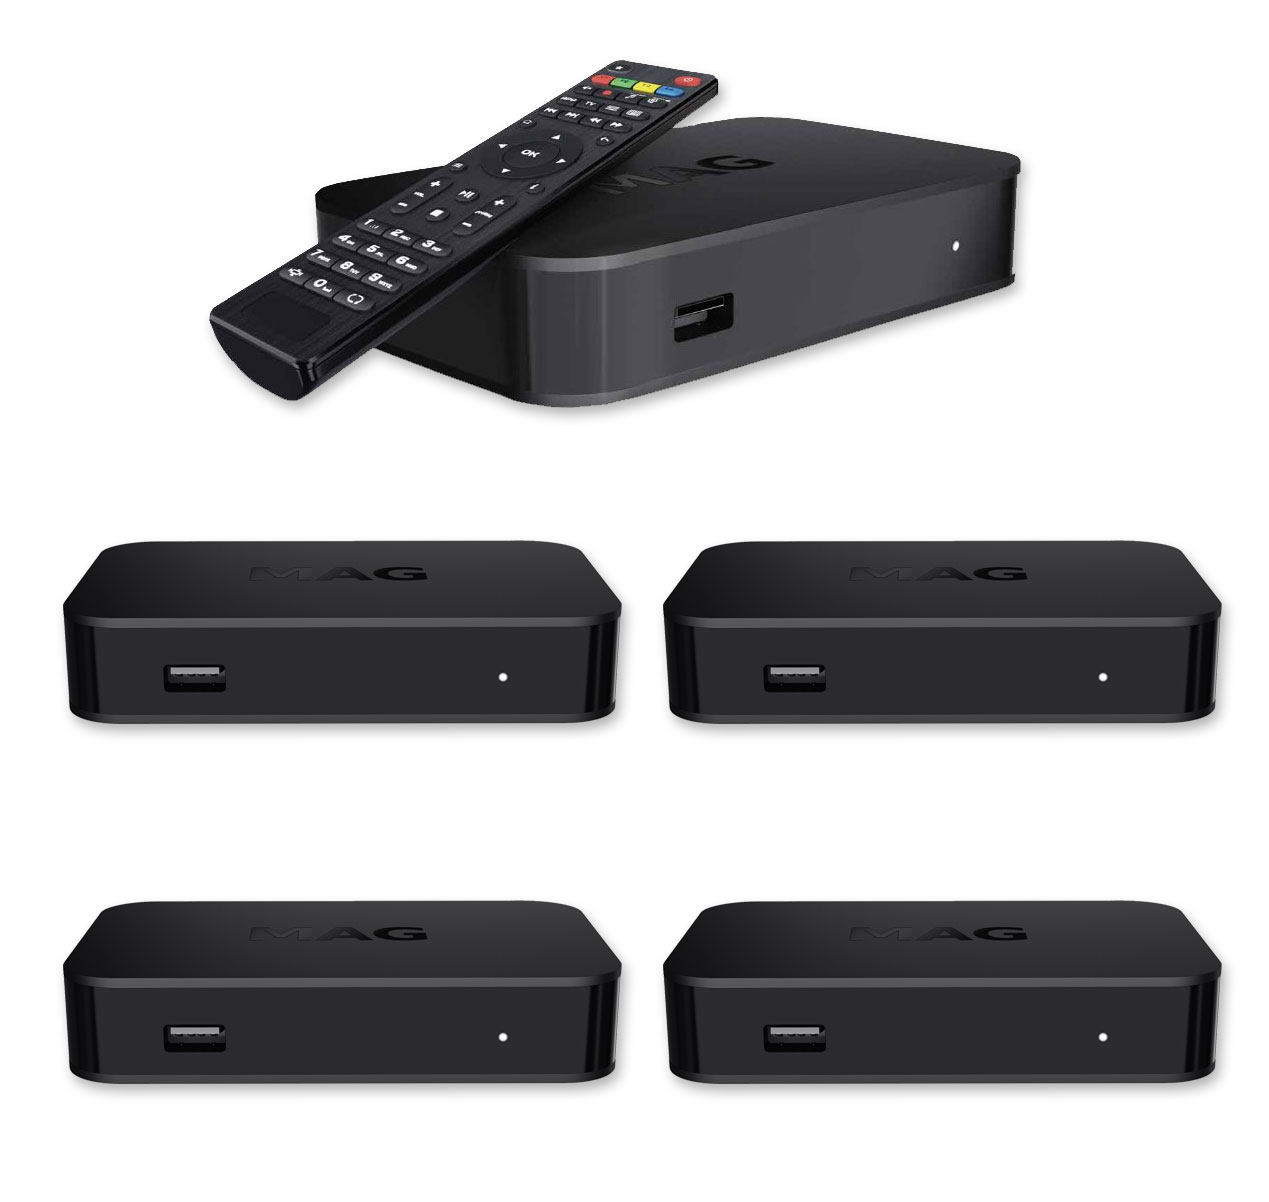 5x MAG 322 BASIC IPTV SET-TOP BOX